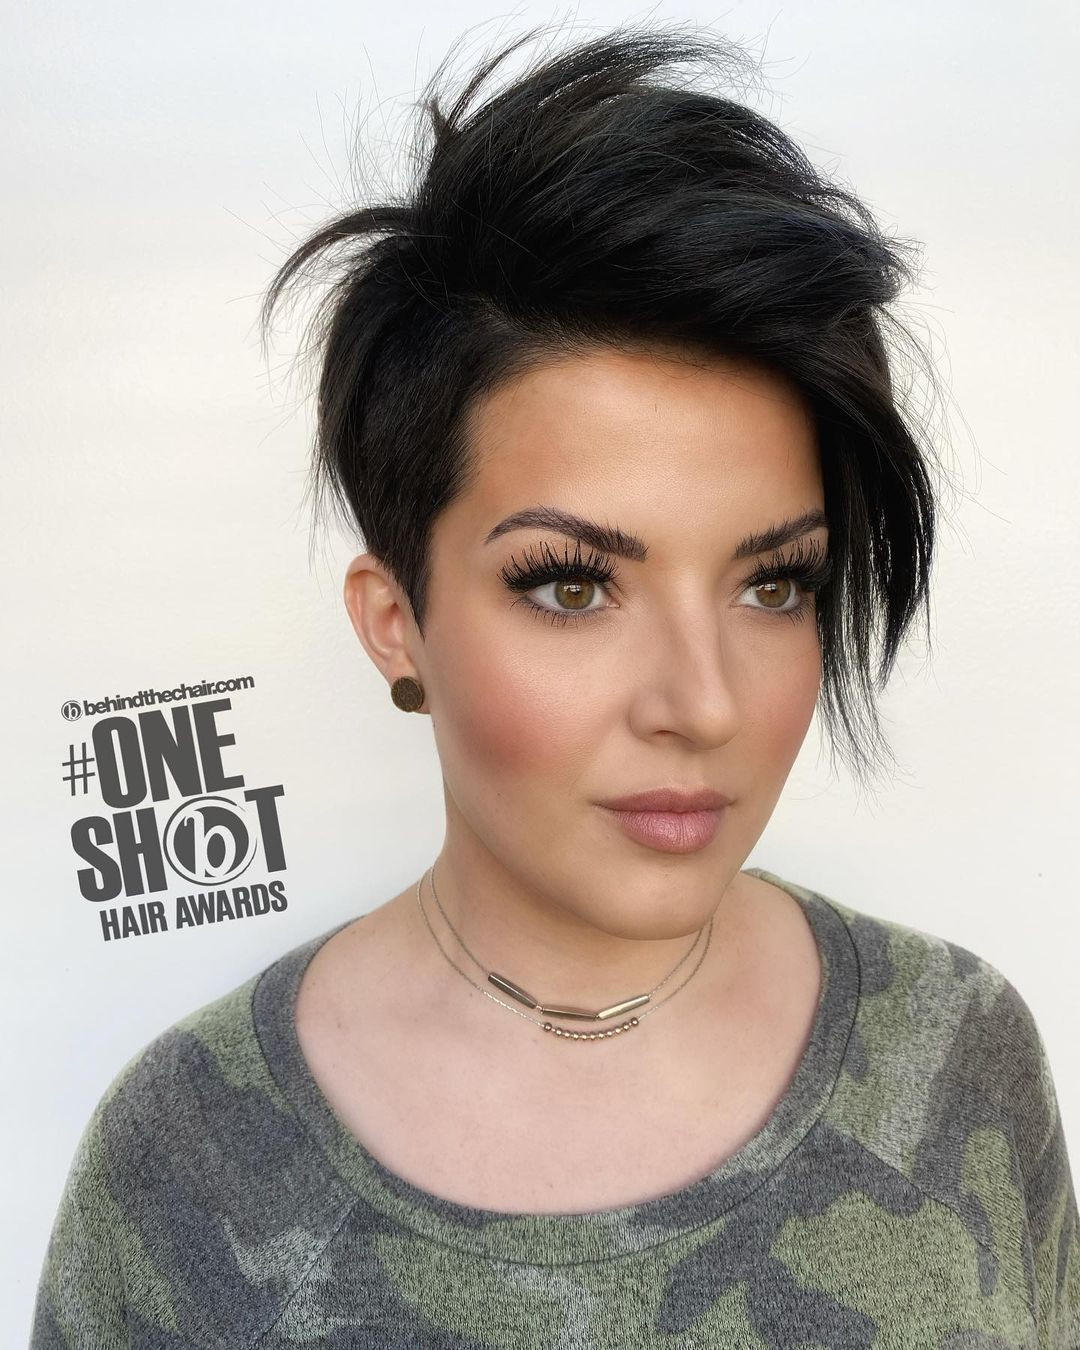 How to Hide Short Fringe to the Side